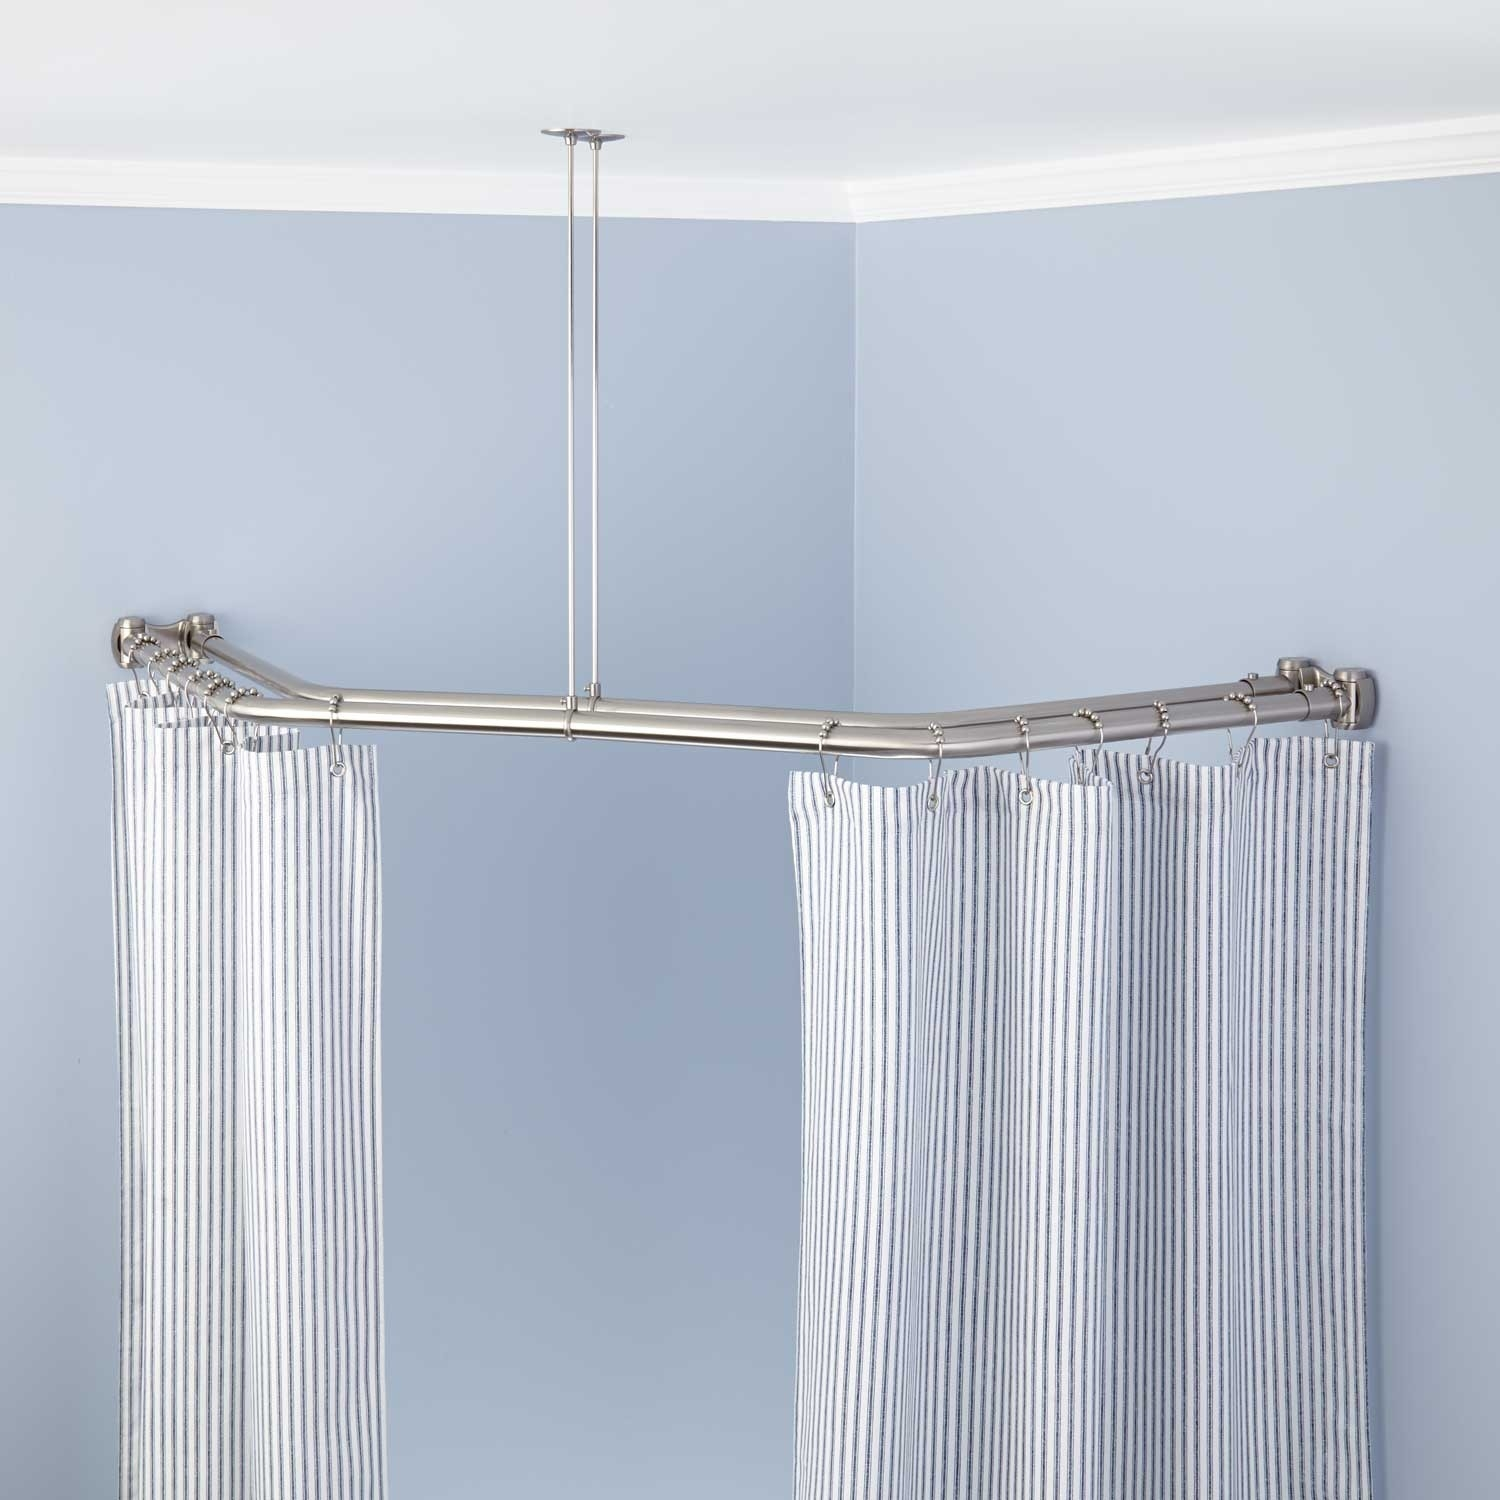 L Shaped Shower Rods Signature Hardware Within L Shaped Shower Curtain Rods (Image 20 of 25)